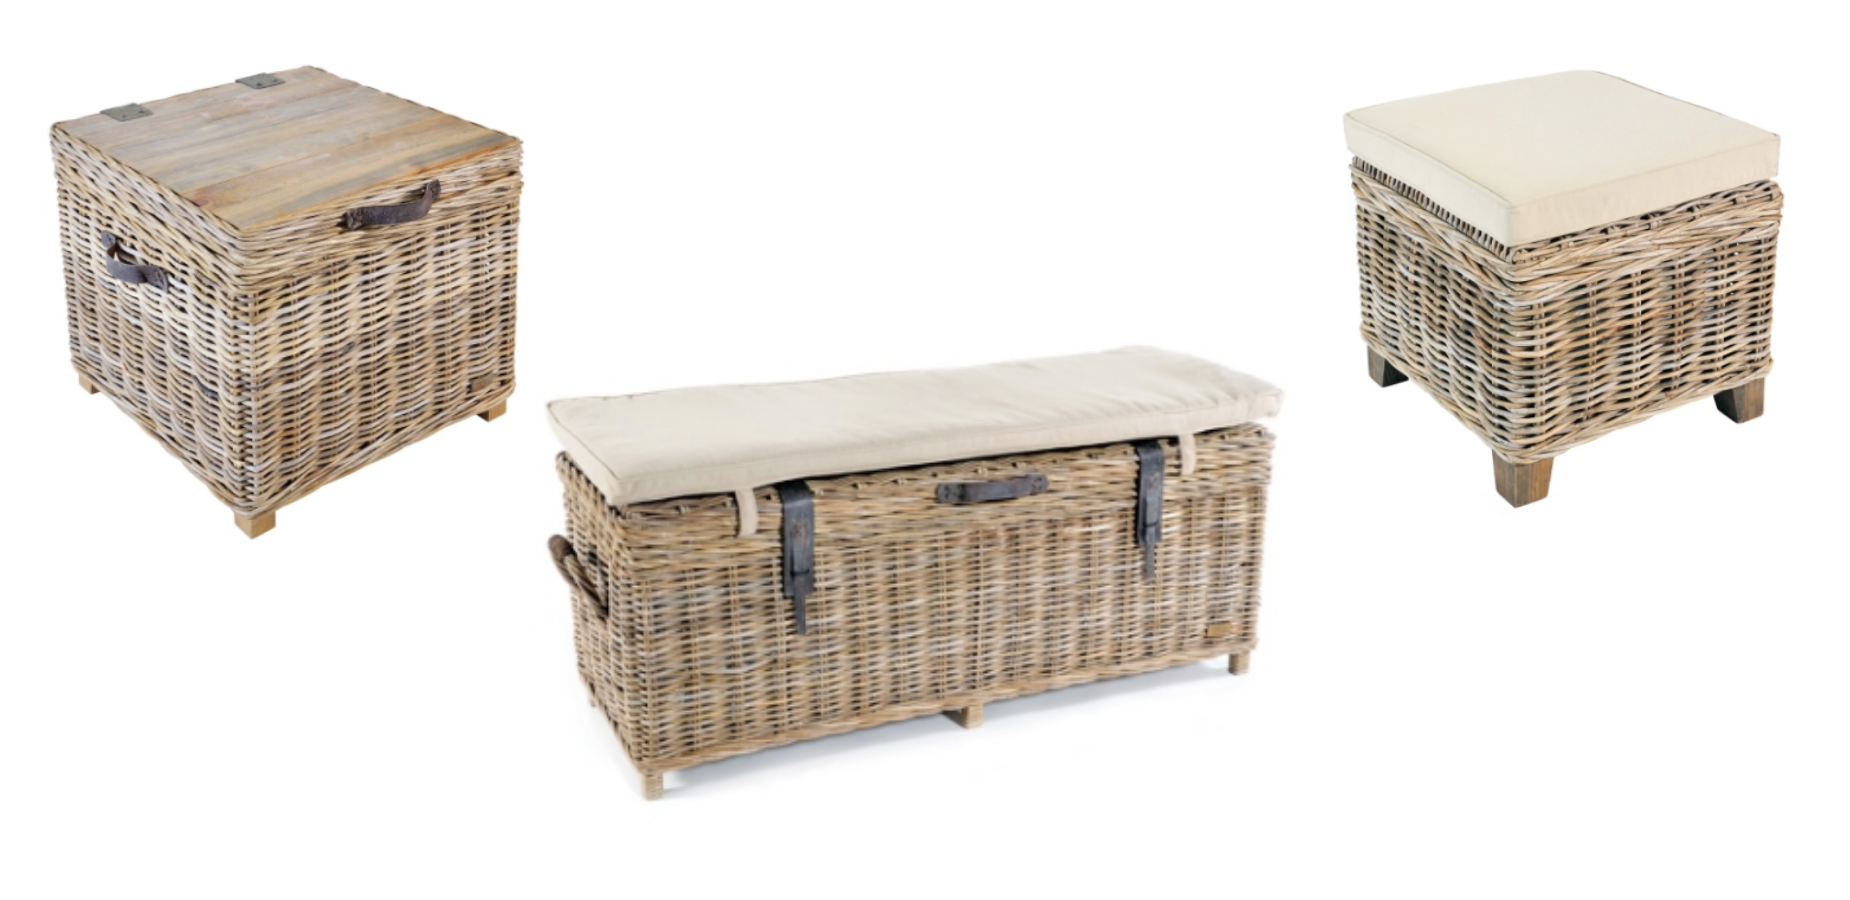 Rattan furniture for the home